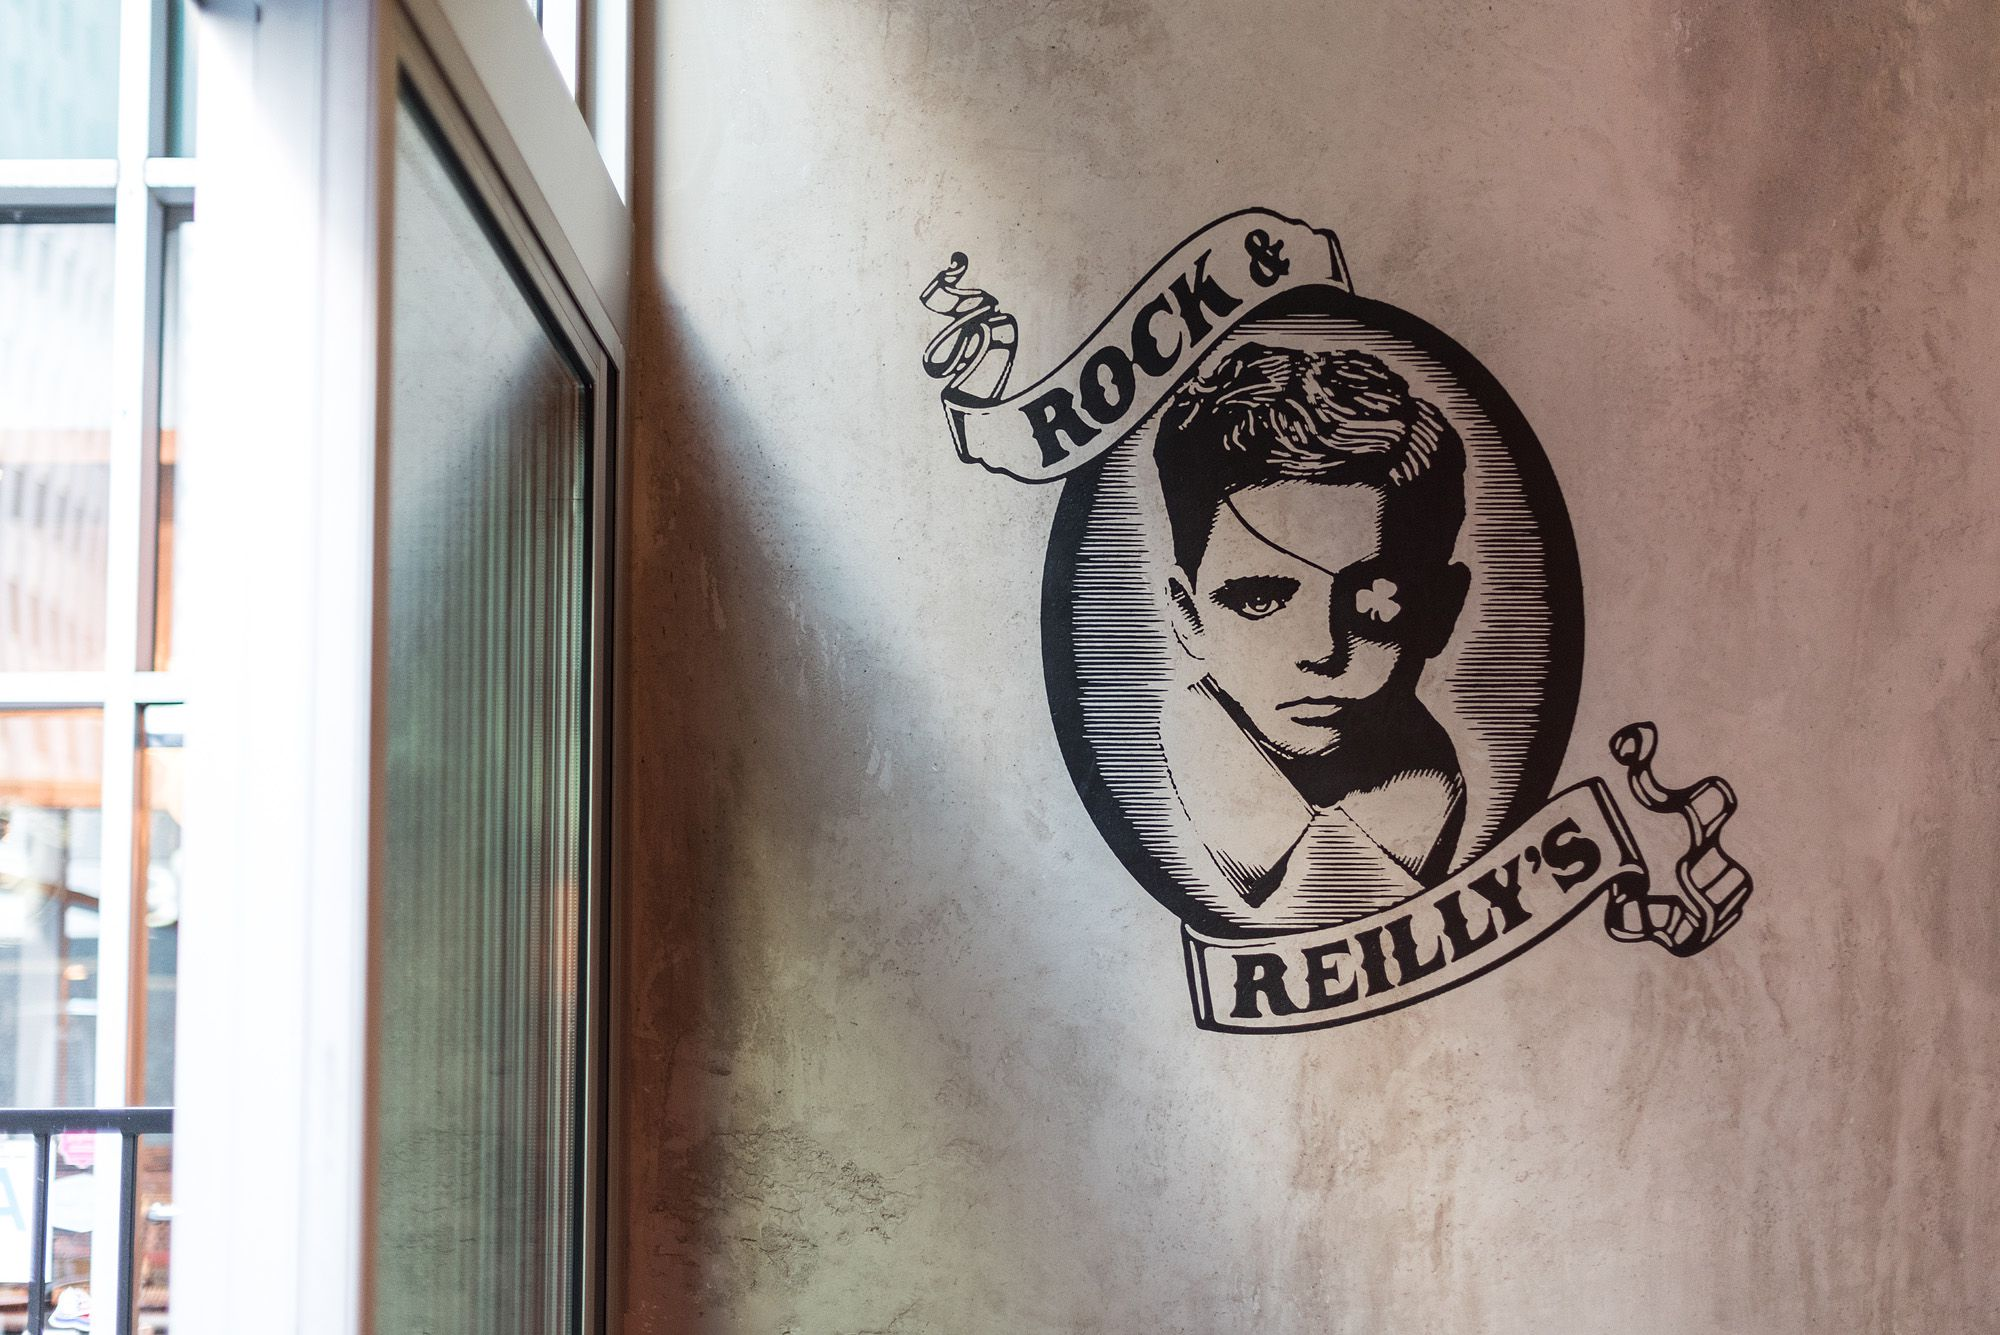 ROCK AND REILLY'S - LA